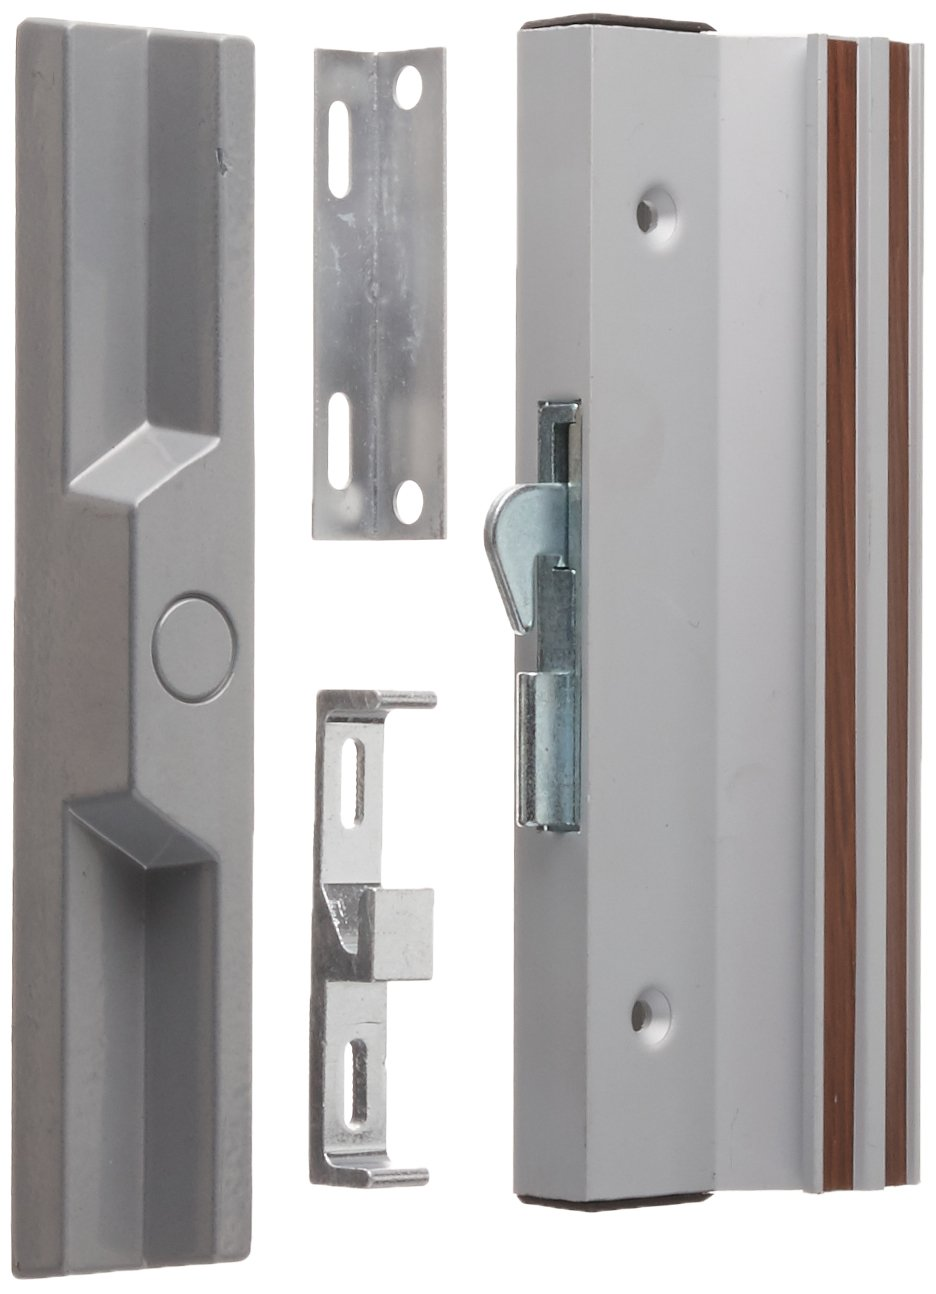 Slide-Co 142854 Patio Door Handle Set, 4-15/16 In., Extruded Aluminum, White, Anti-Lift, Pack of 1